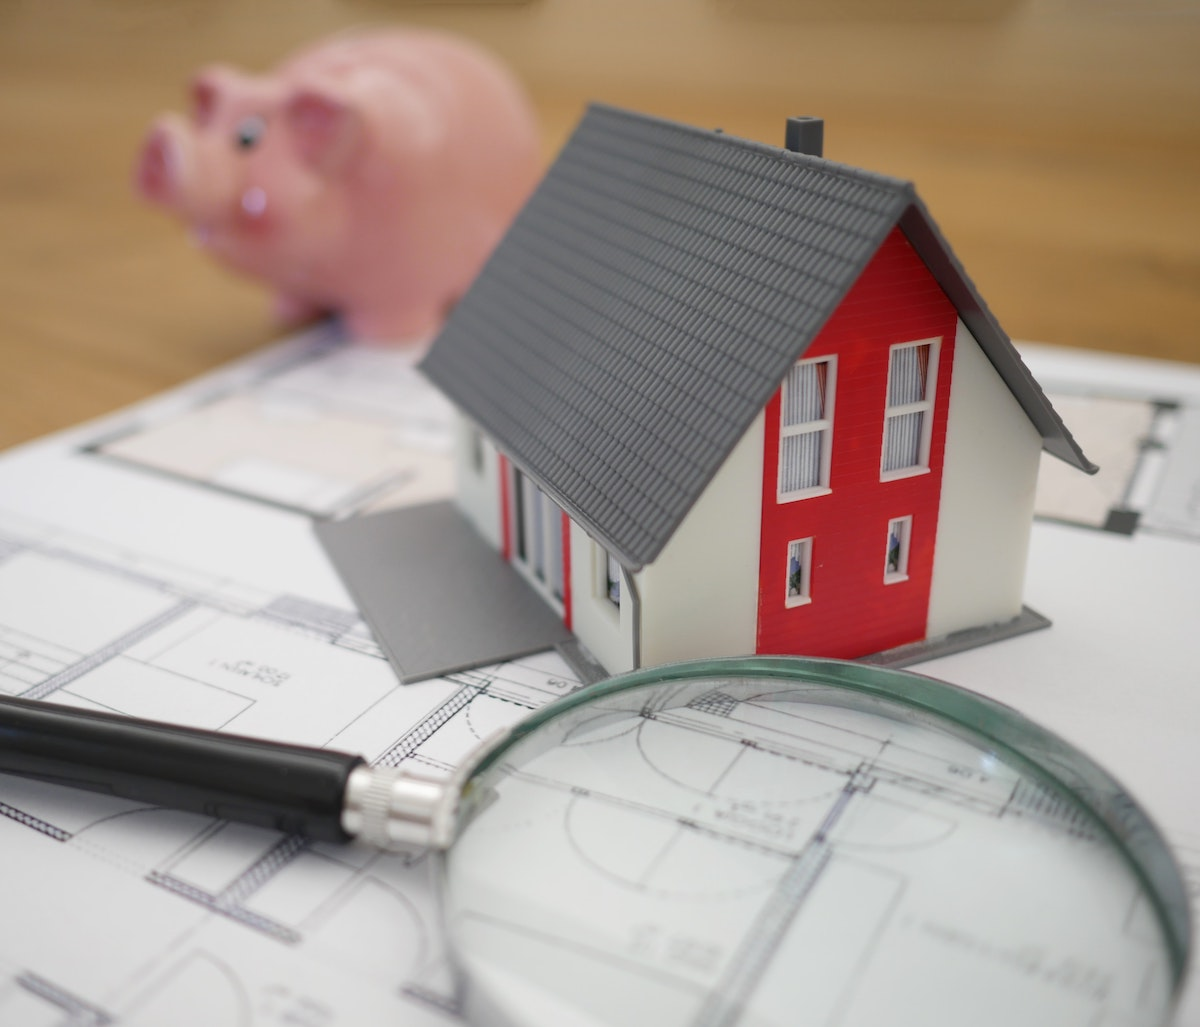 a house and a piggy bank on some papers